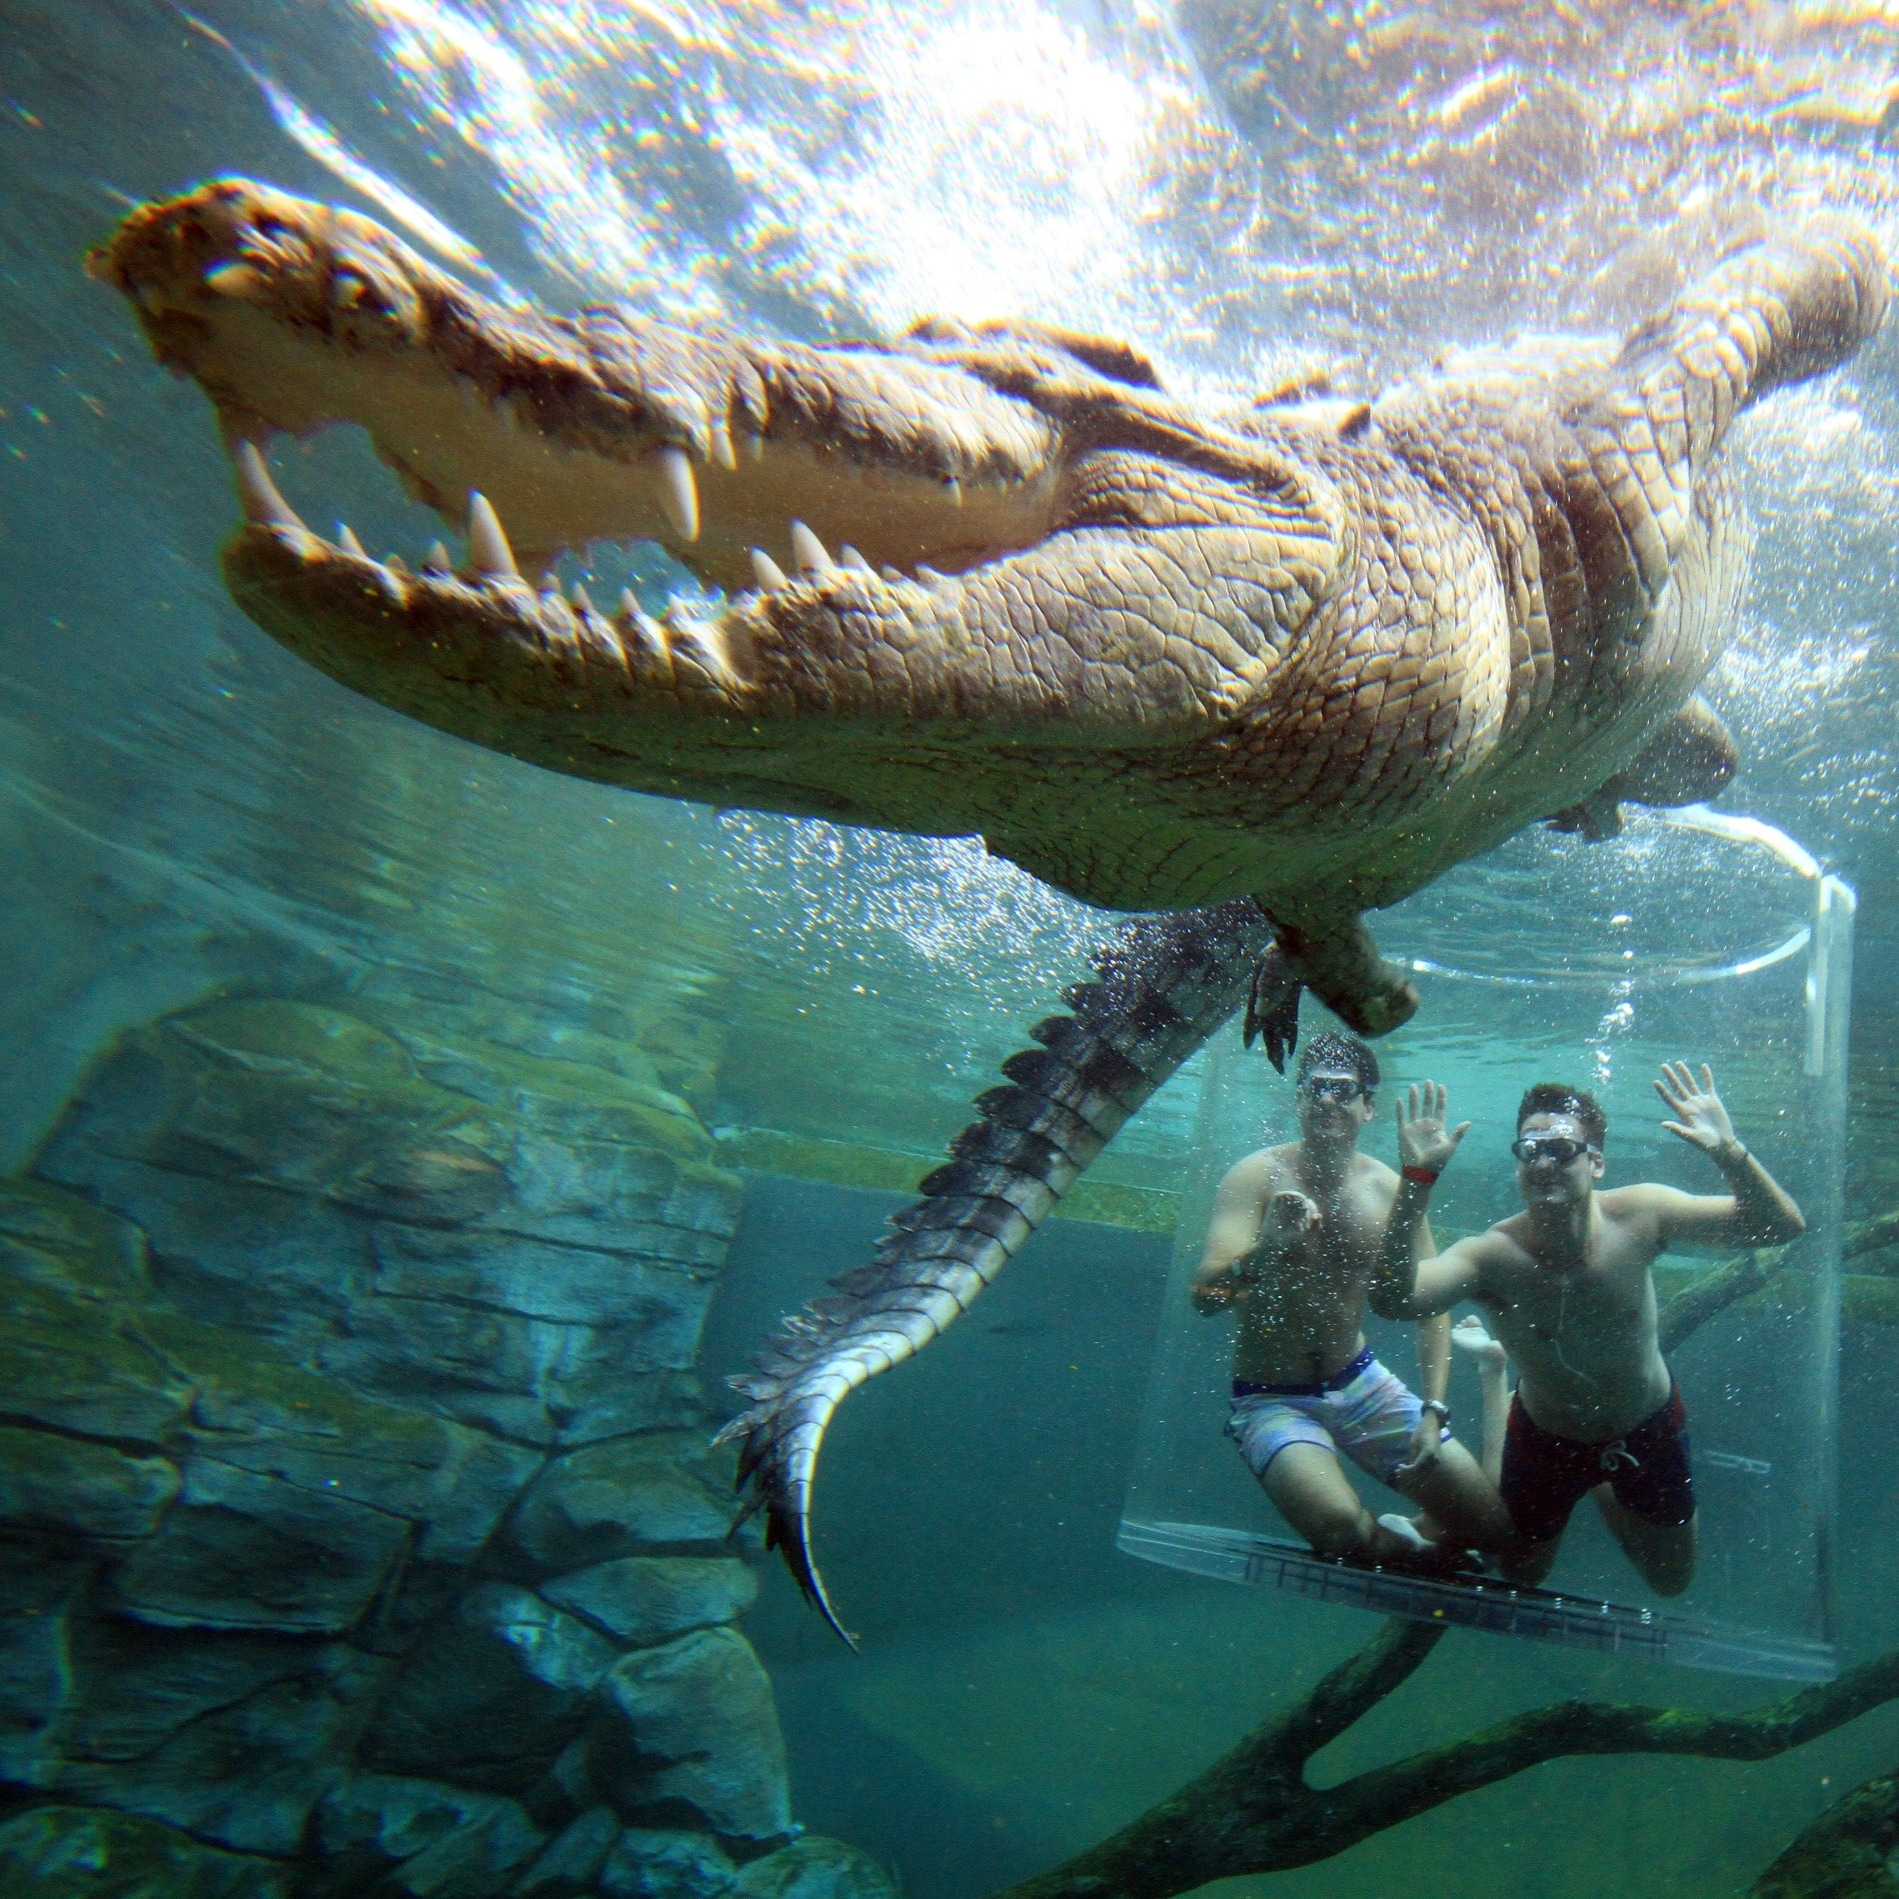 A visitor diving in the Cage of Death with a saltwater crocodile at Crocosaurus Cove © Tourism NT/Shaana McNaught